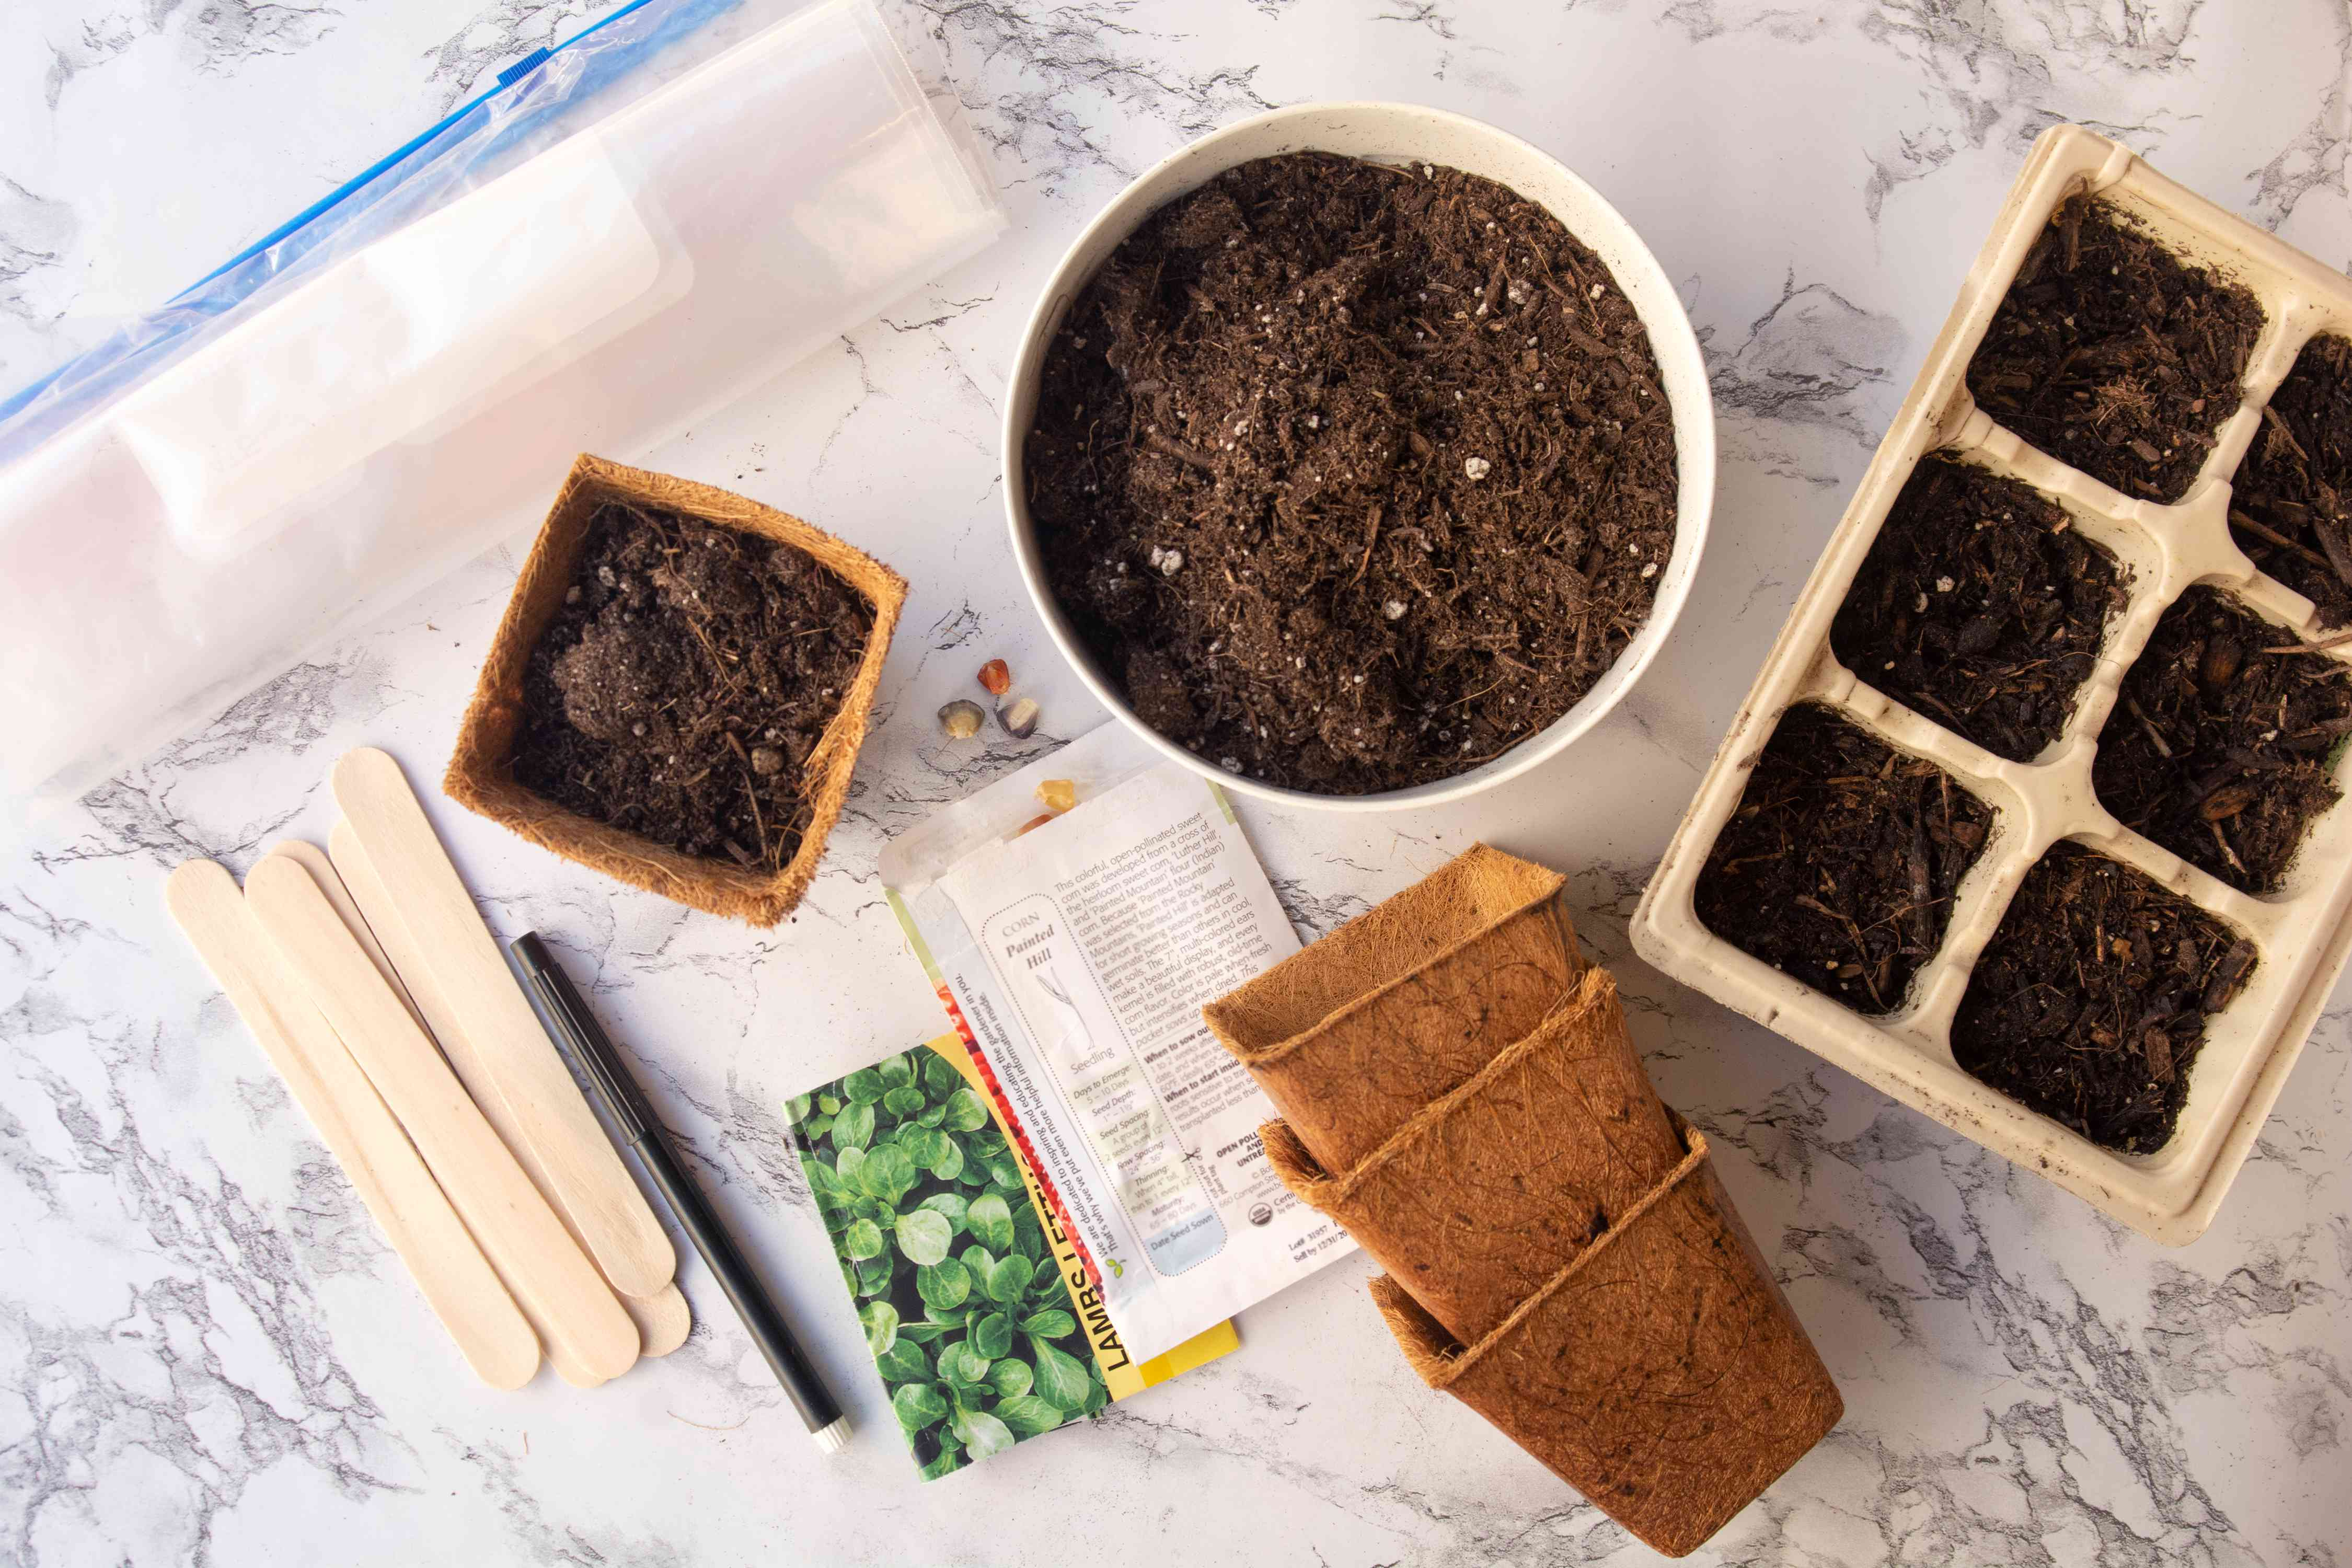 Materials and tools to start seed indoors on marbled surface